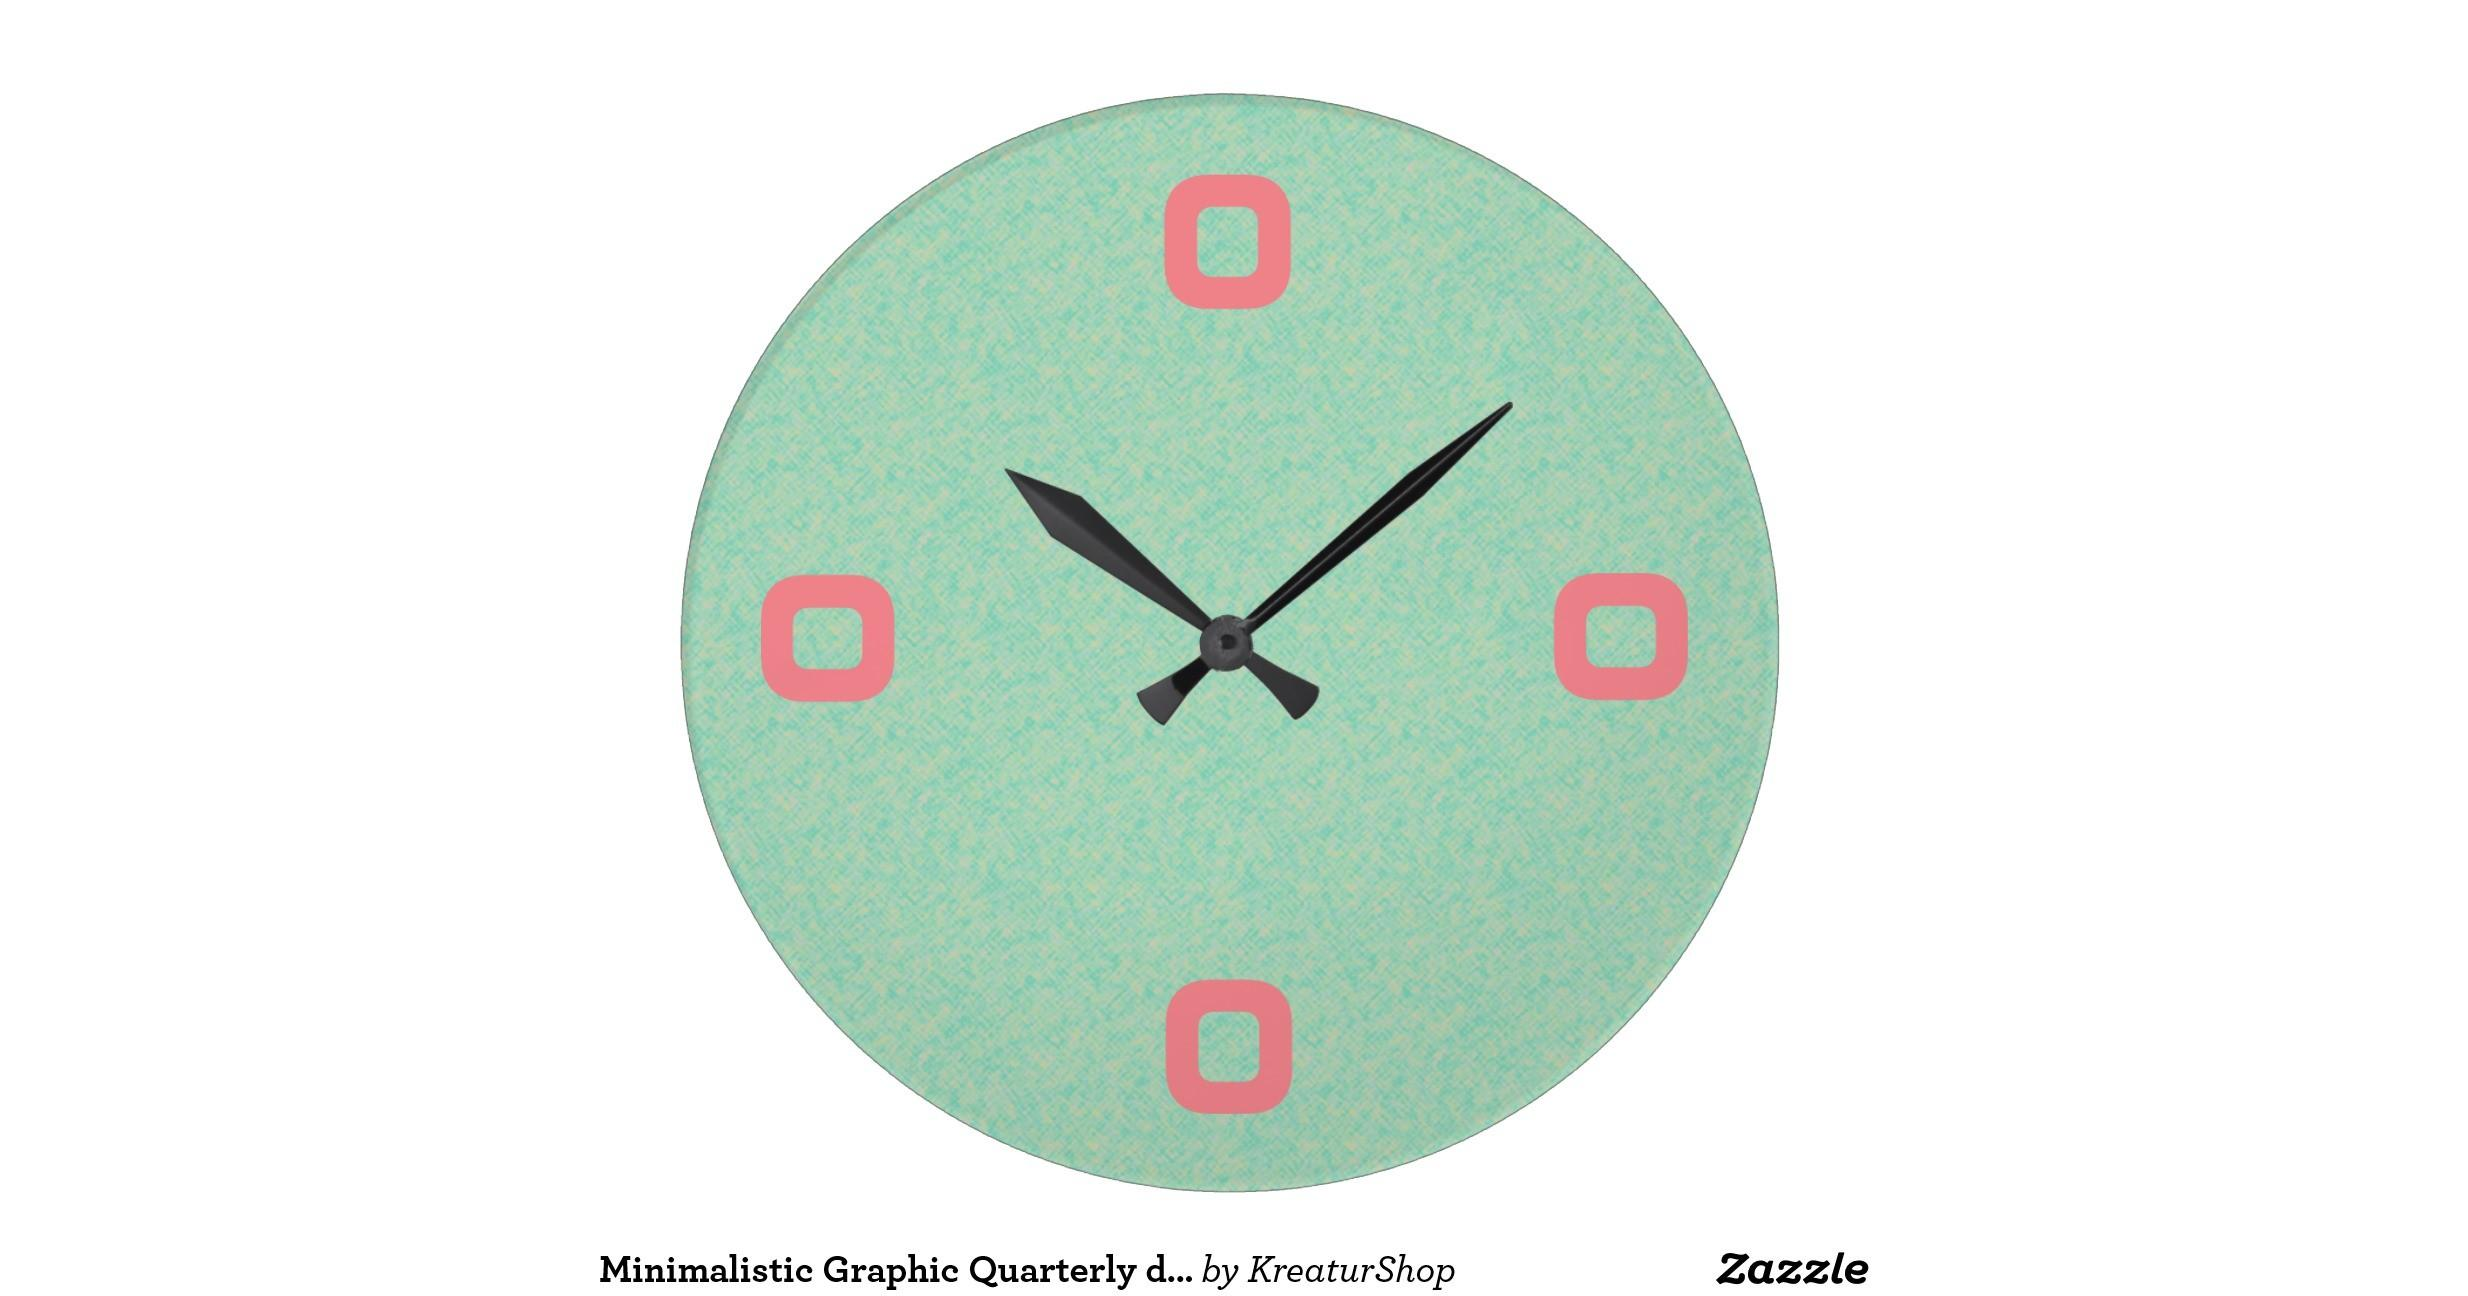 Minimalistic Graphic Quarterly Digits Wall Clocks Zazzle